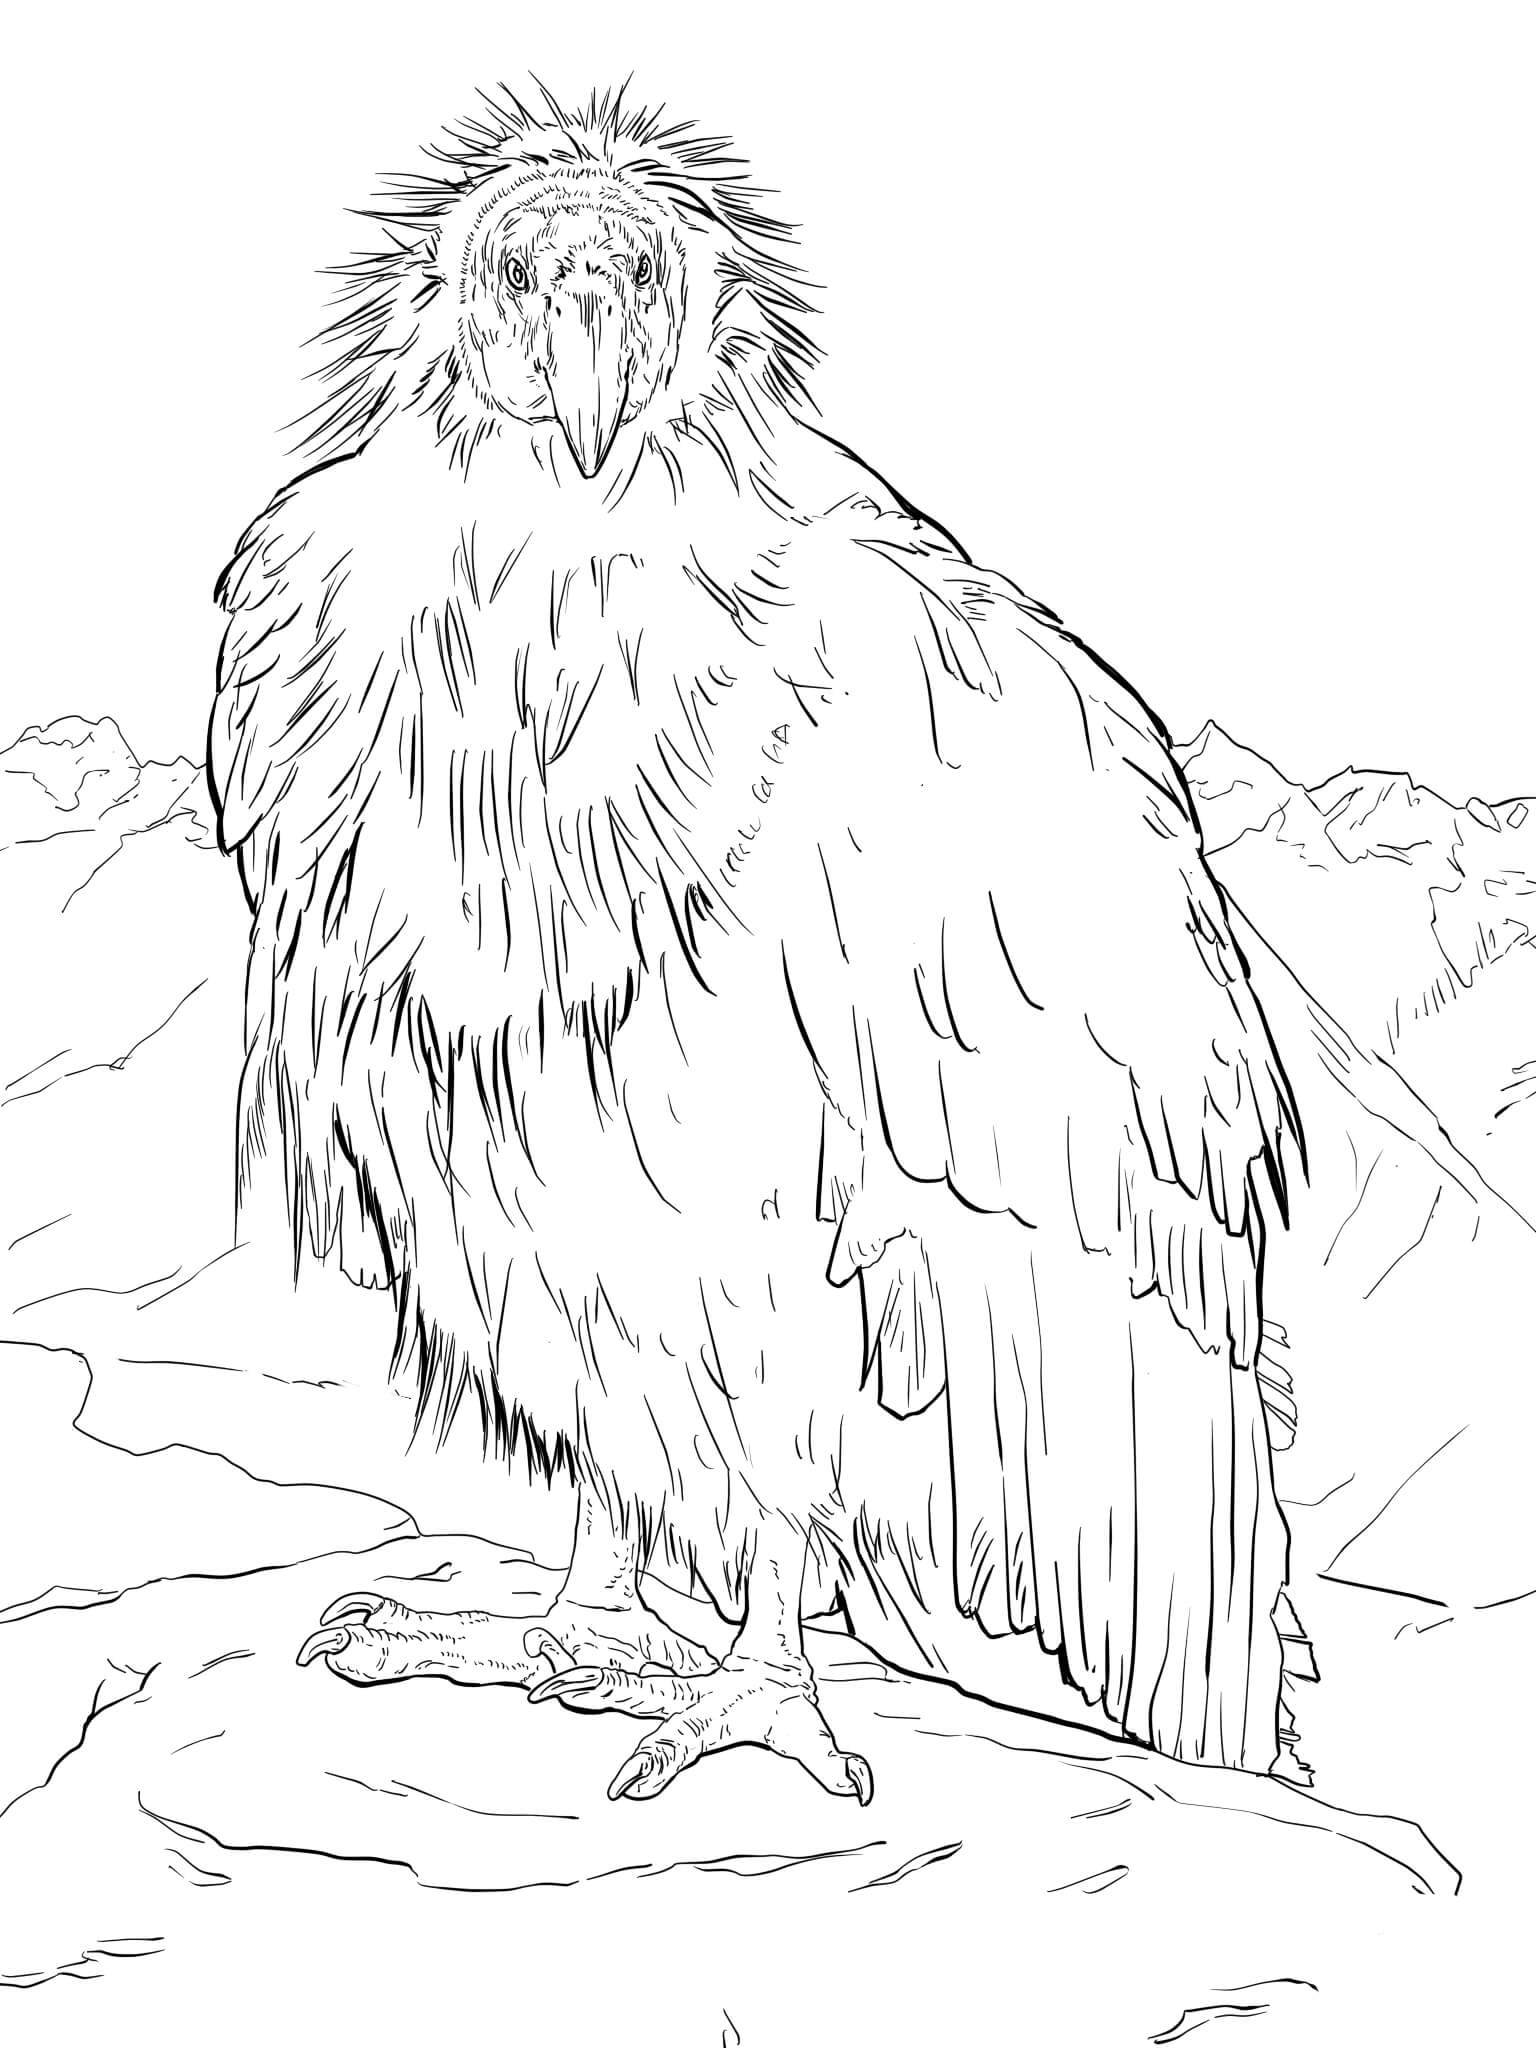 Condor coloring pages to download